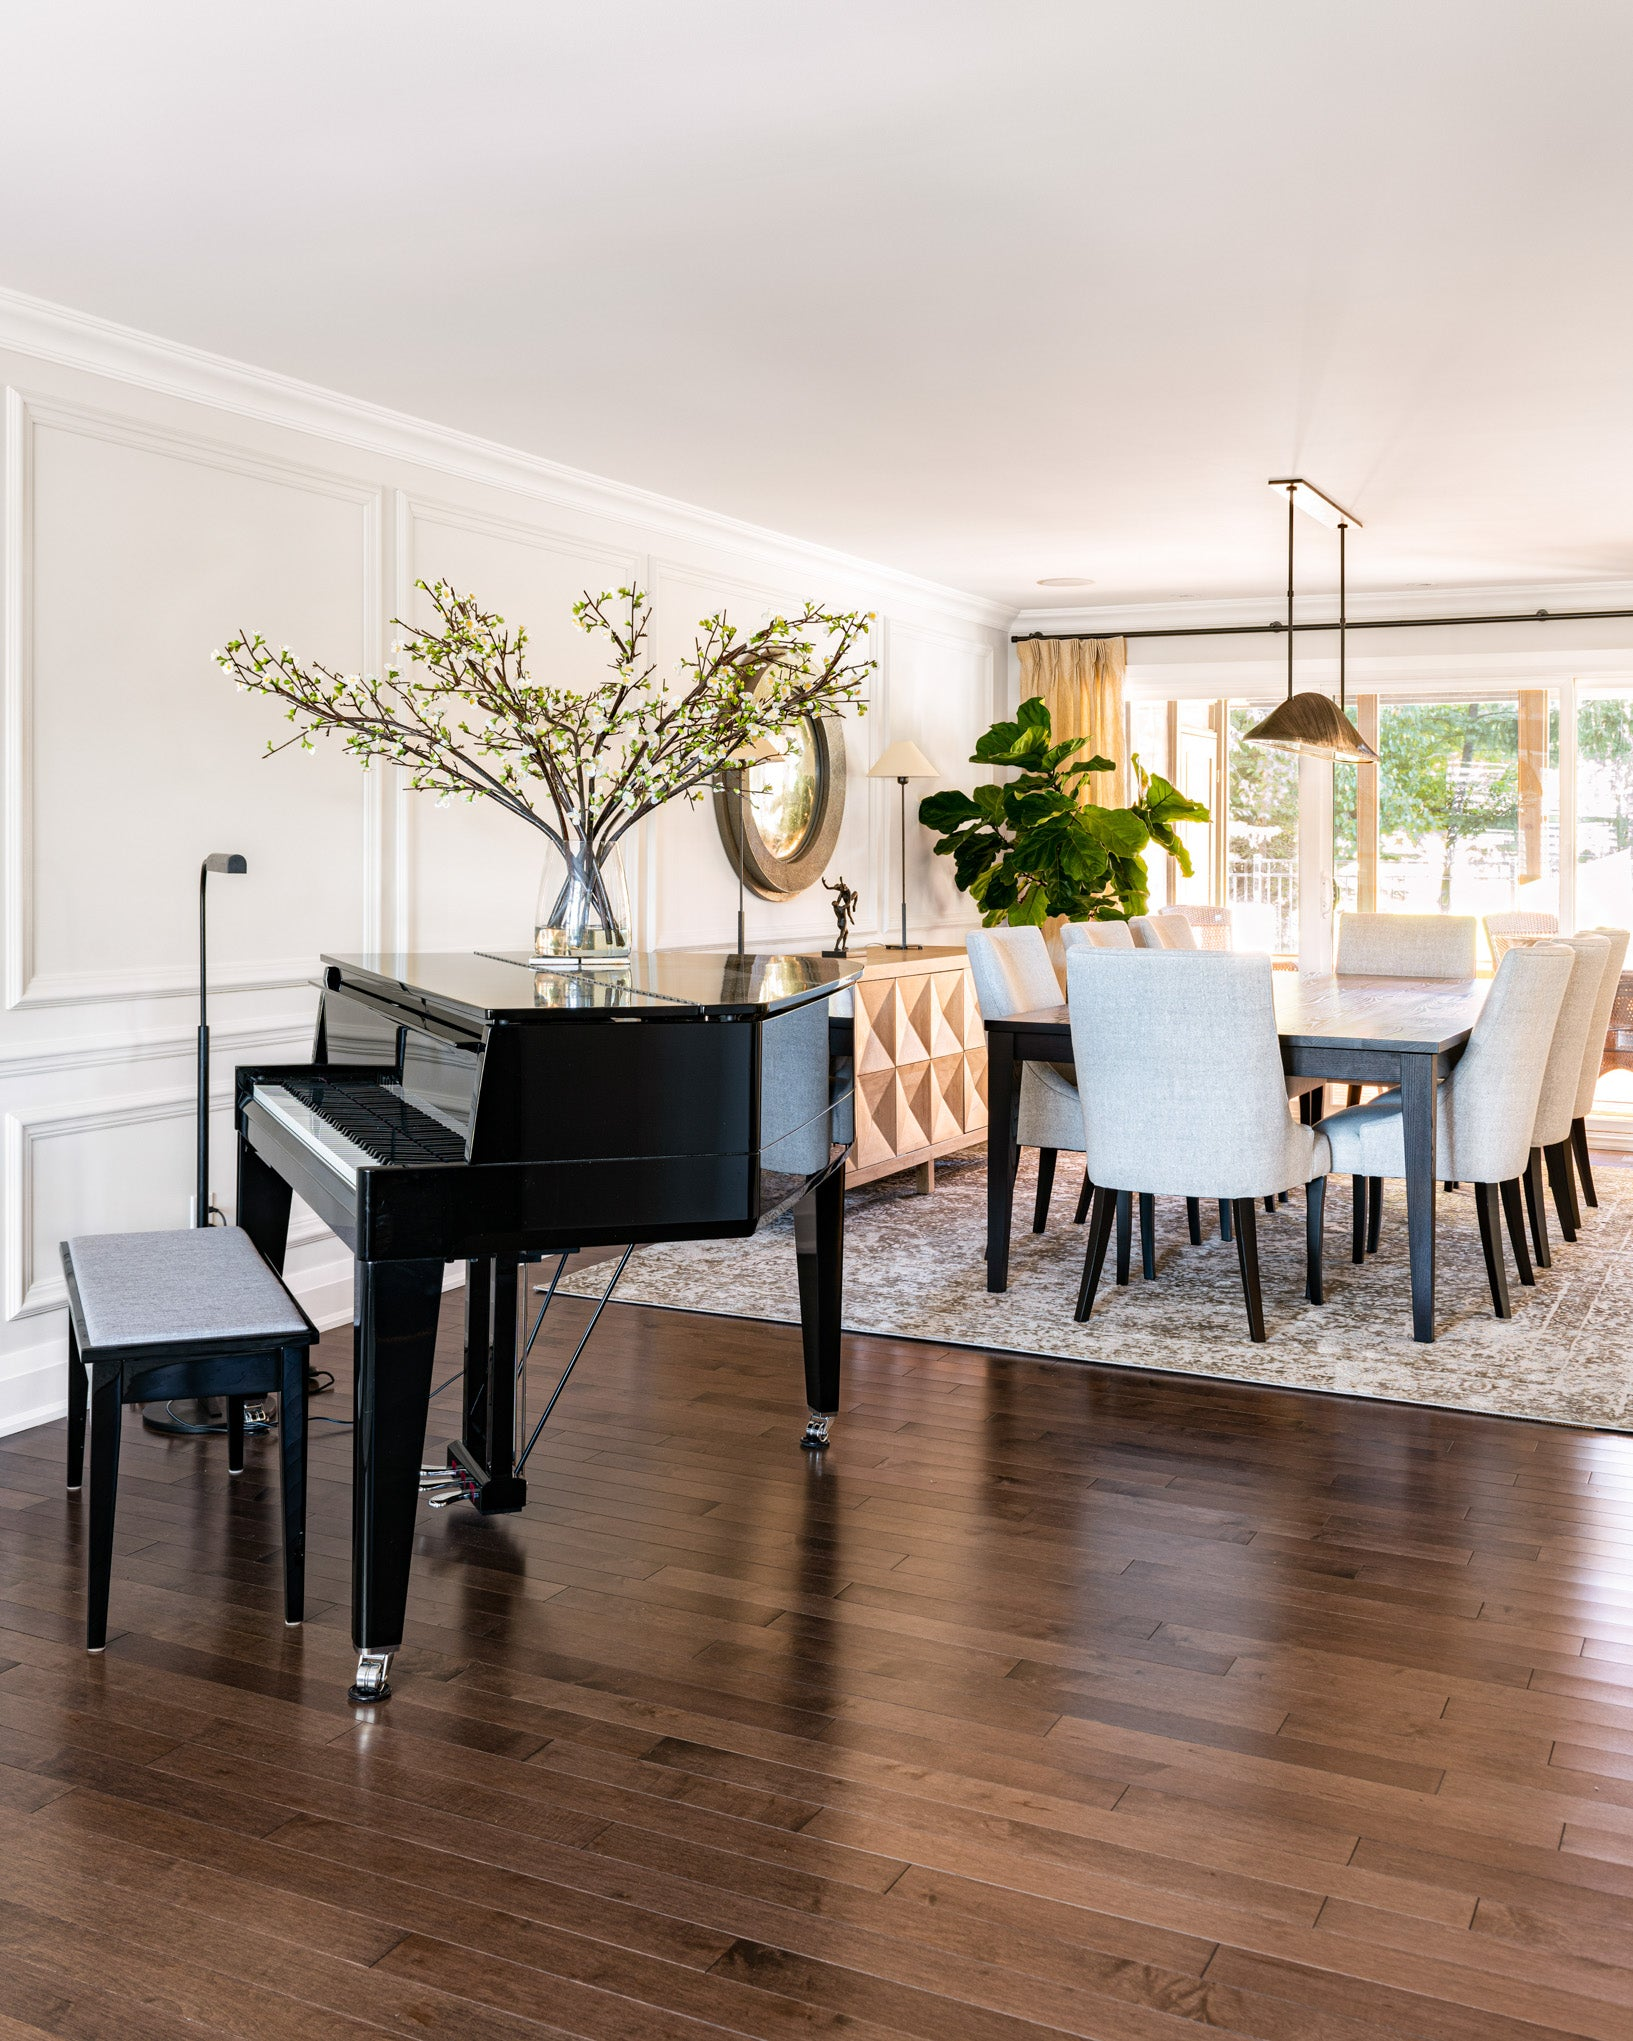 Dining room with piano.